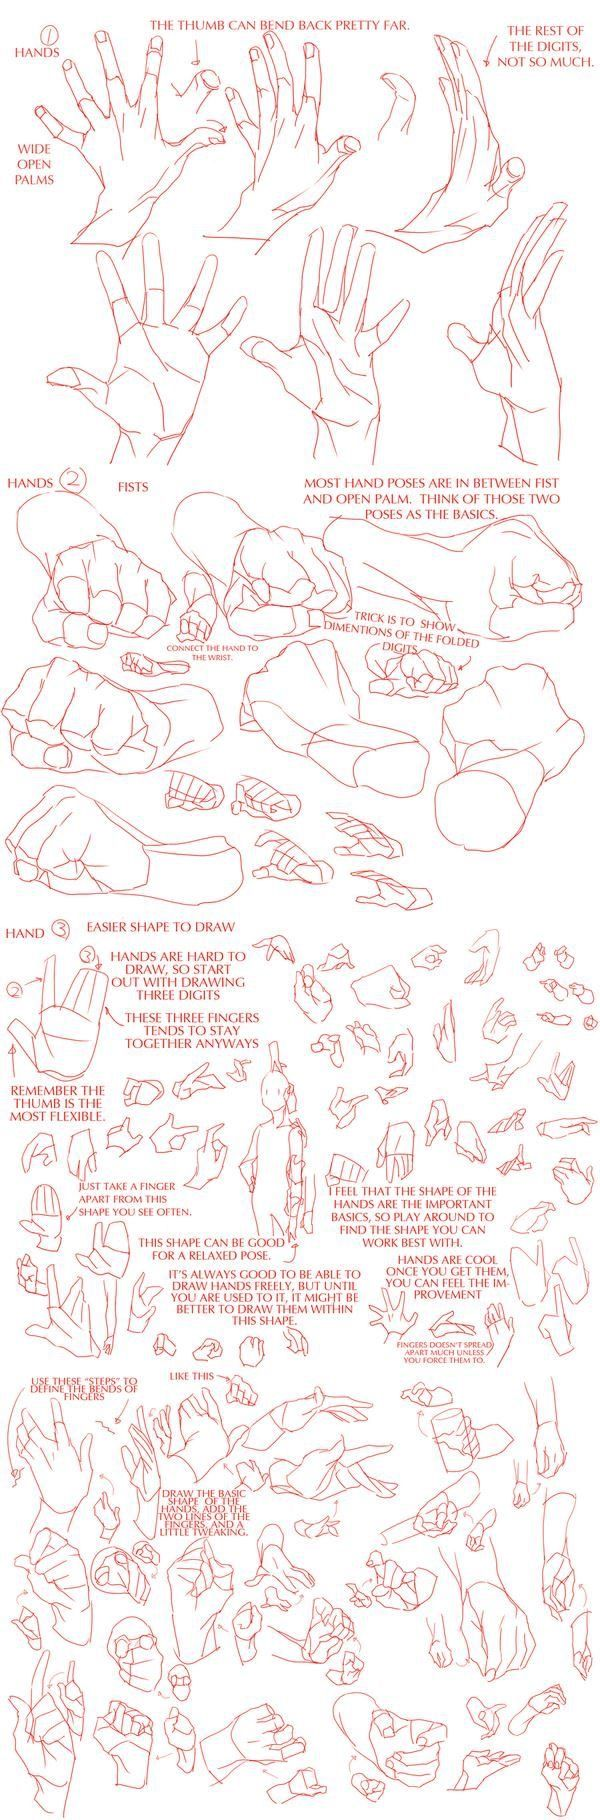 Hand anatomy for artists